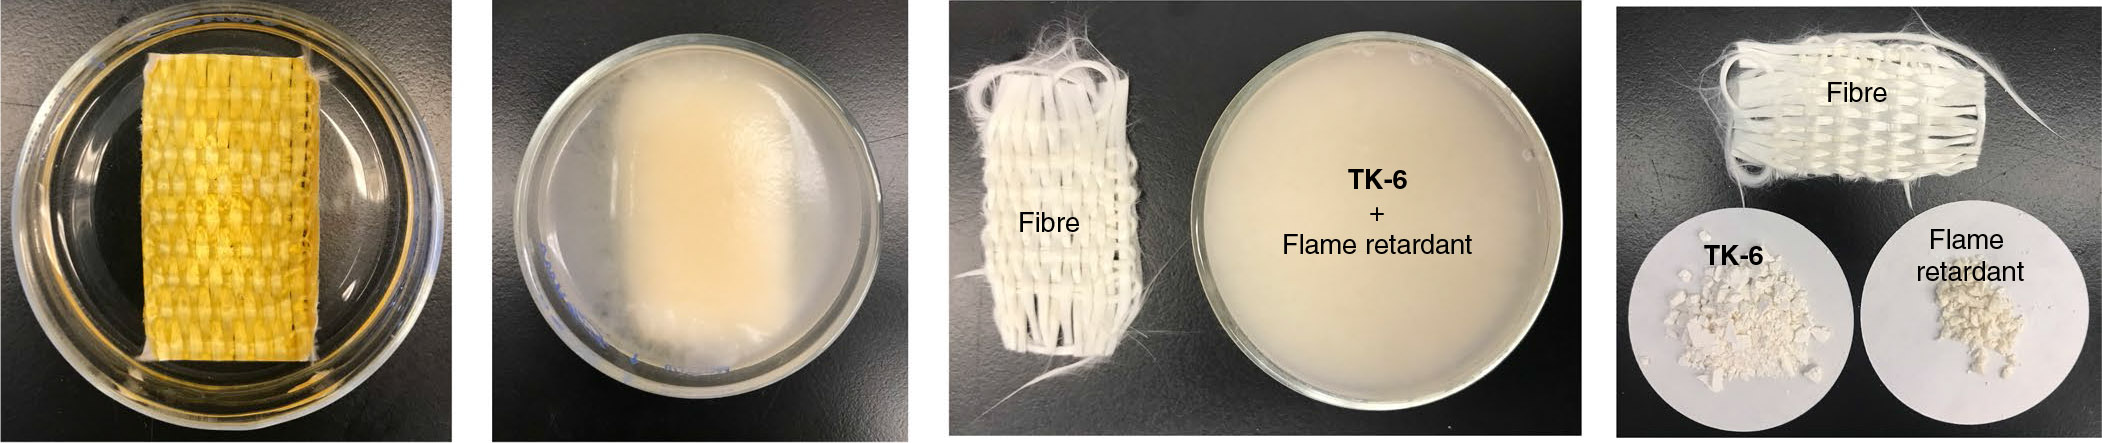 Fiberglass weave with a flame retardant plastic? Neatly separate that back out to fiberglass weave, plastic building blocks, and the flame retardant additive.